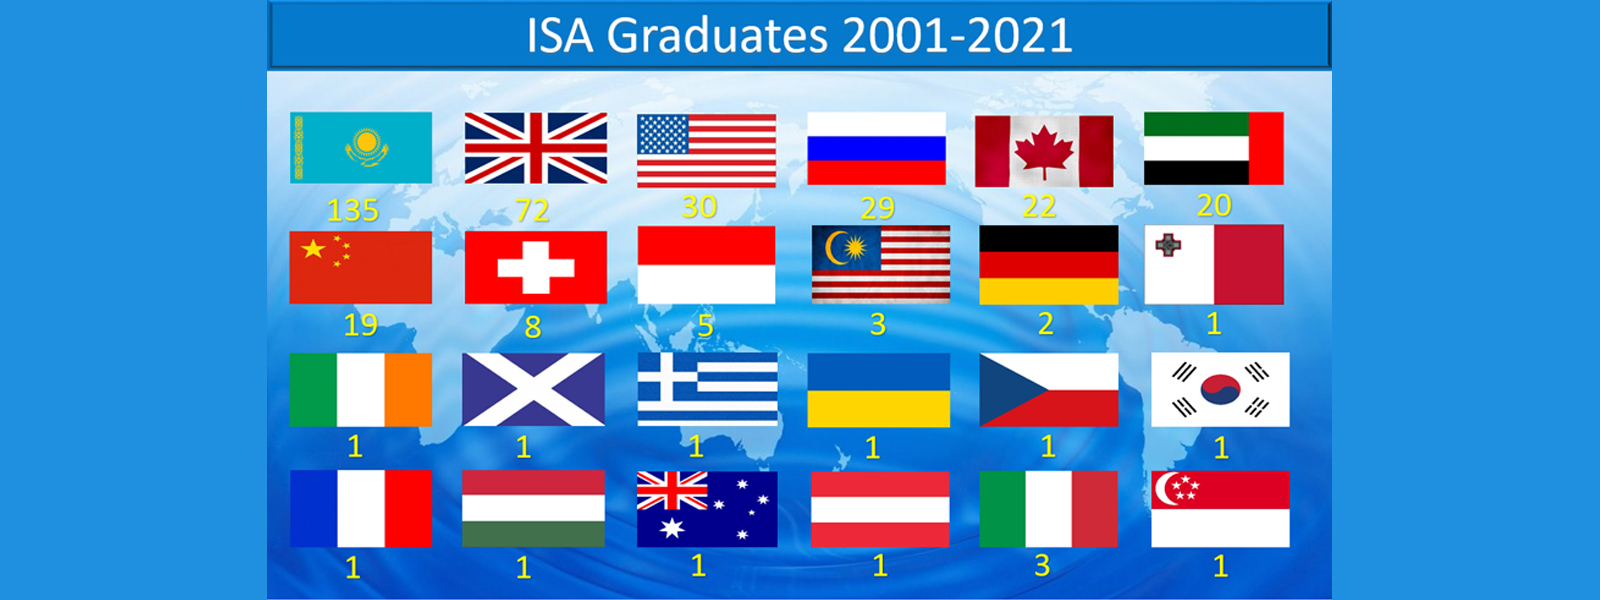 IT'S EASIER TO MAKE A CHOICE IN THE FUTURE WITH ISA